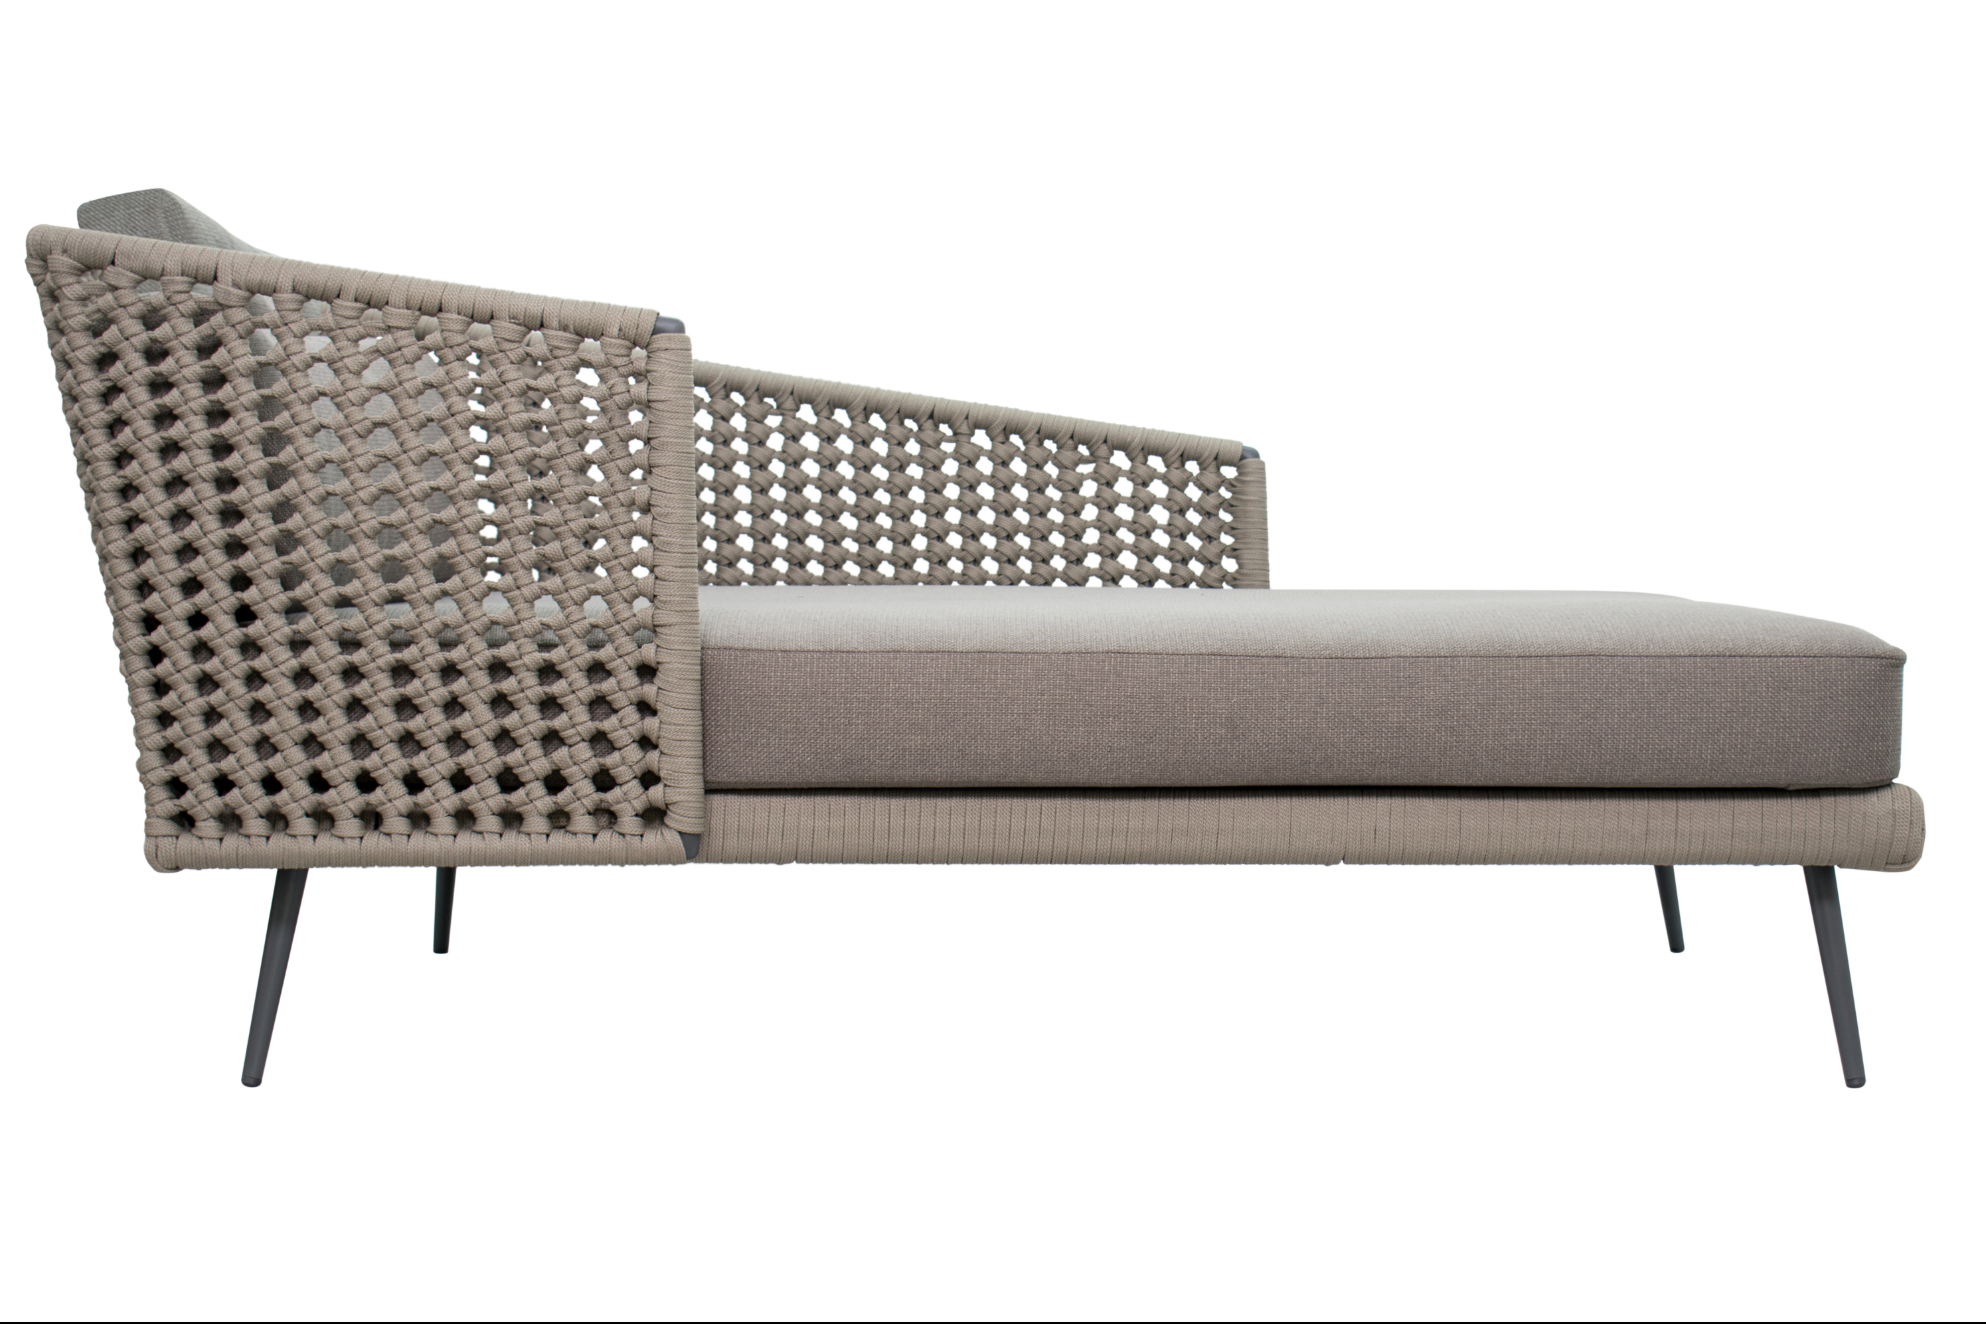 Best Chaise Lounge For Indoor Outdoor